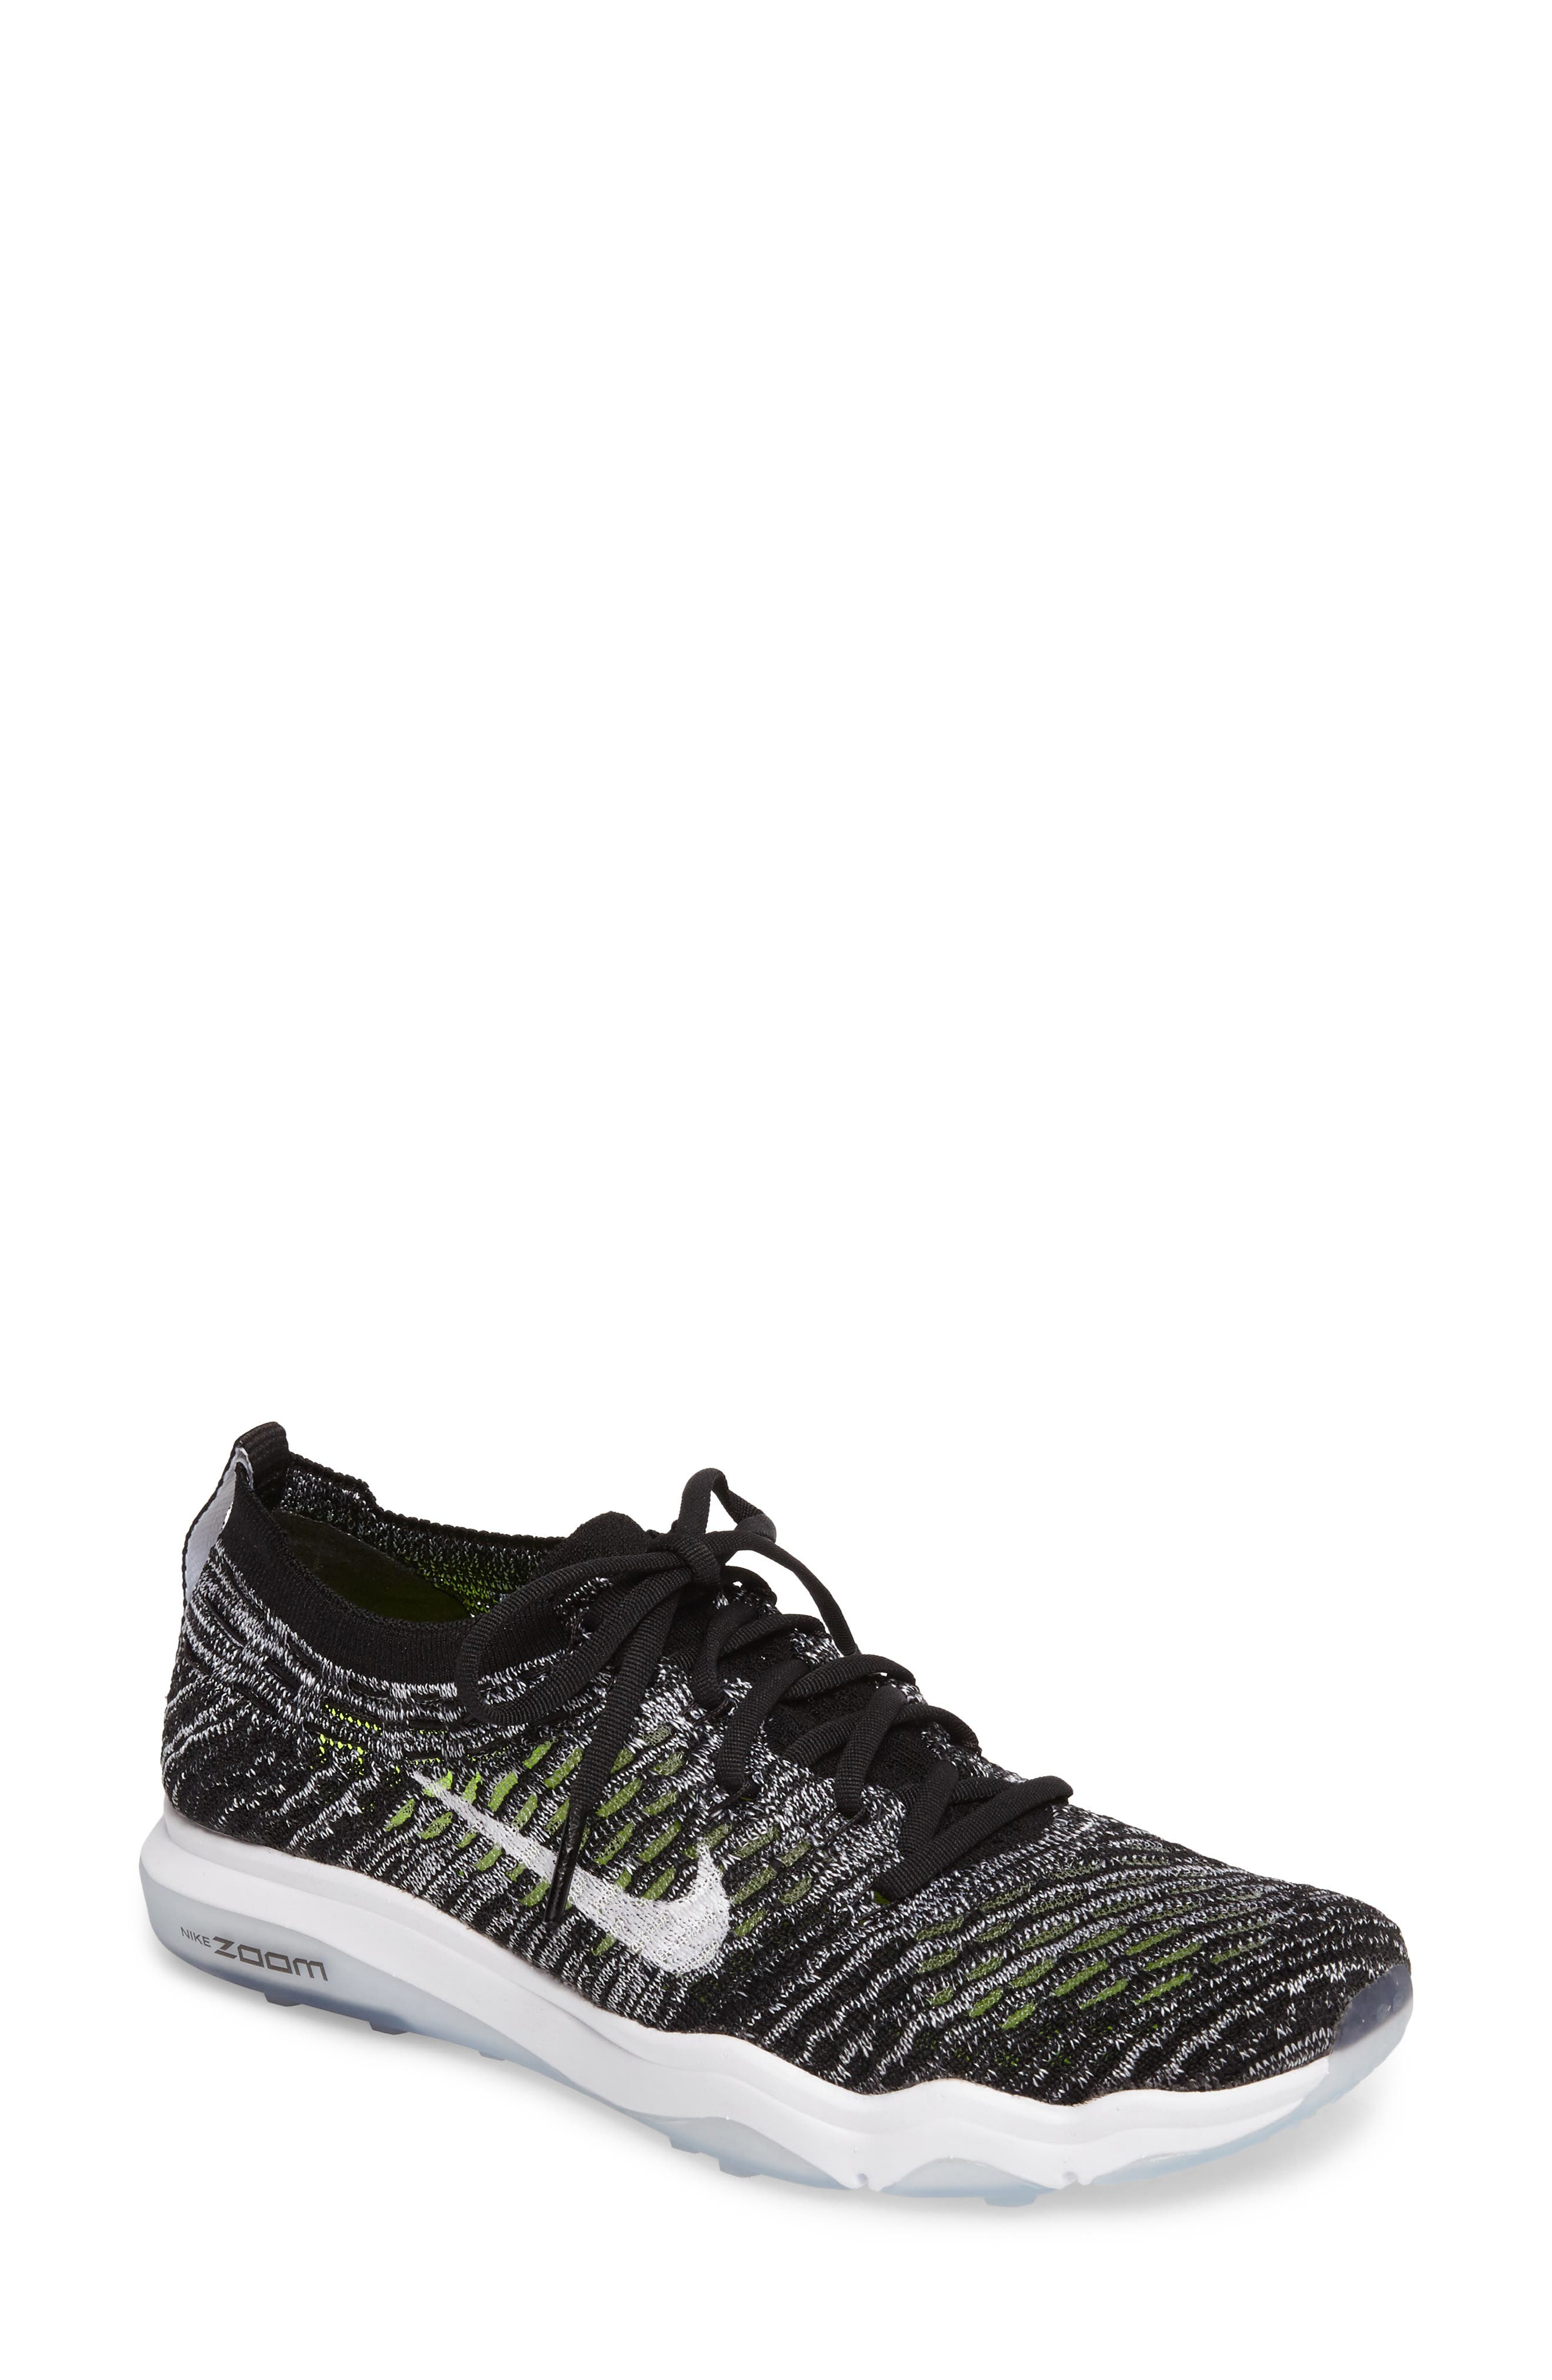 Air Zoom Fearless Flyknit Training Shoe,                         Main,                         color, Black/ White/ White